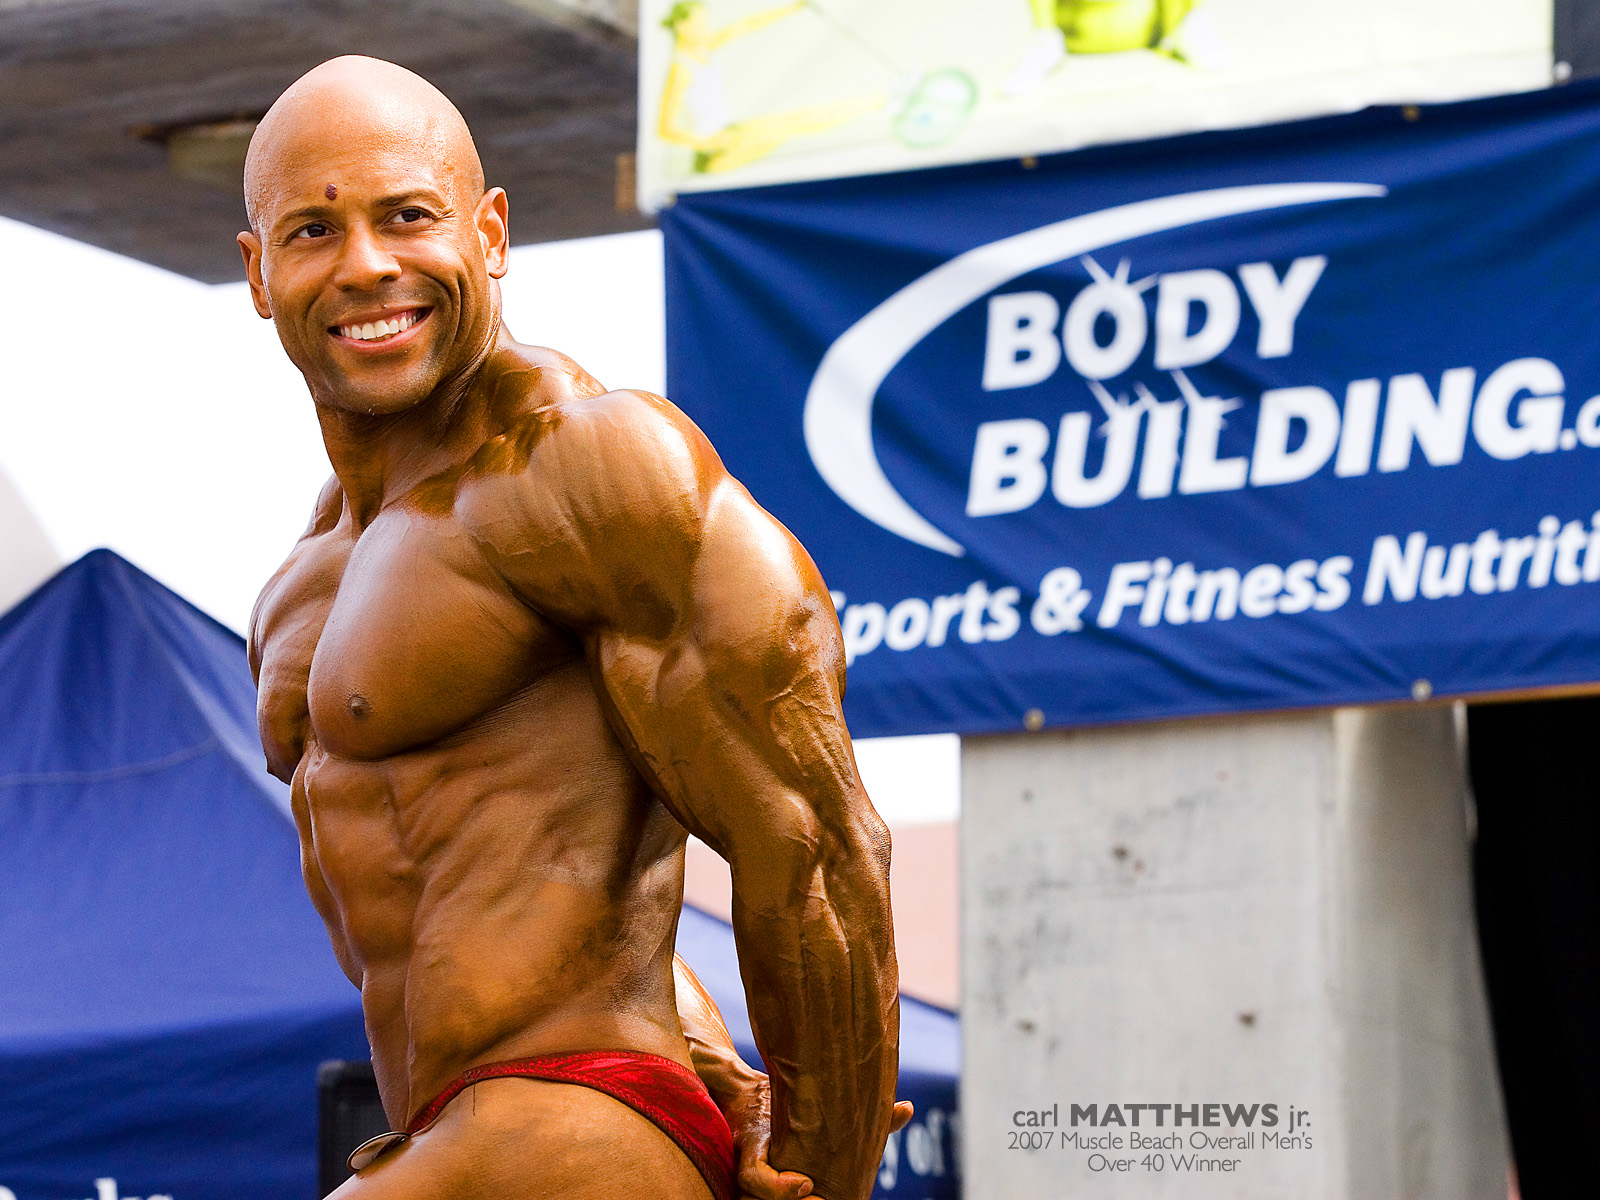 Muscle Beach Memorial Day CompetitionSunday and Pre-Judging